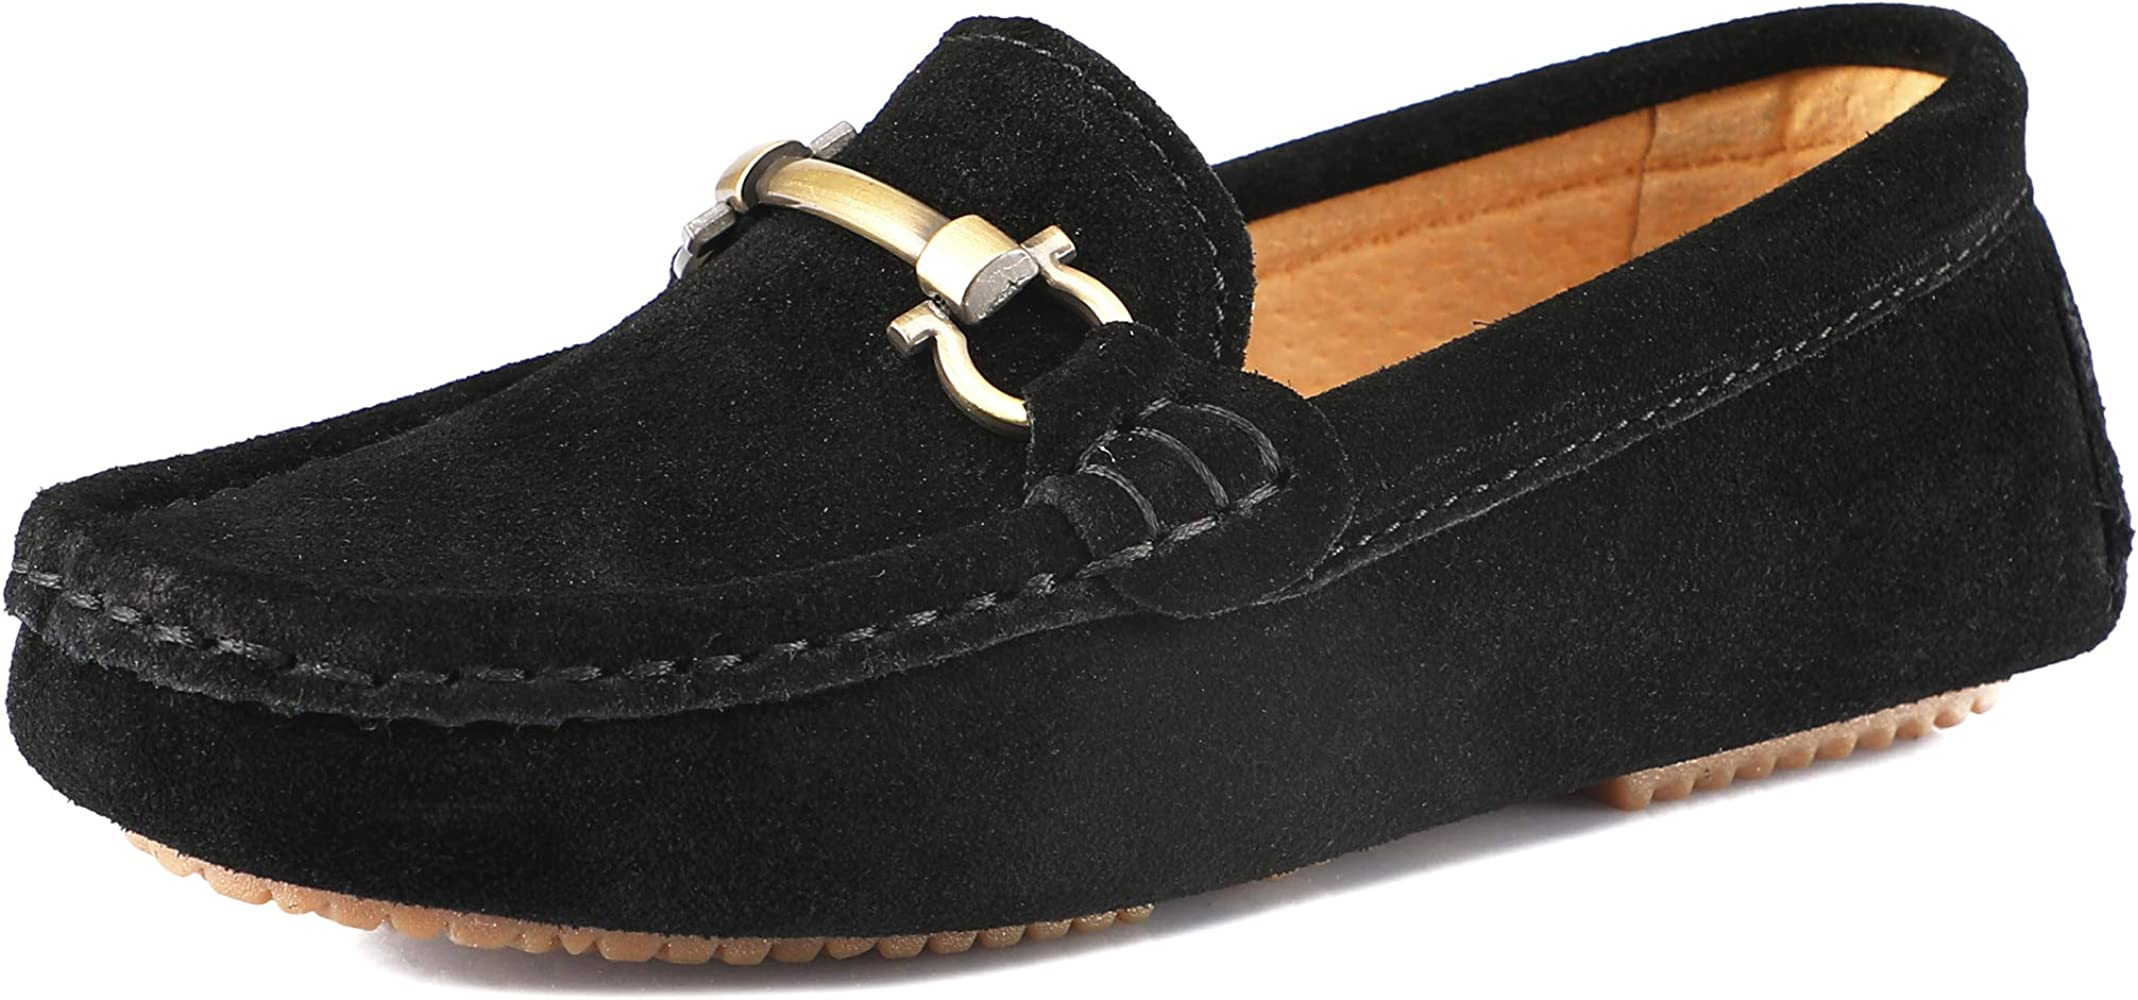 Suede Loafers Slip On Boat Shoes